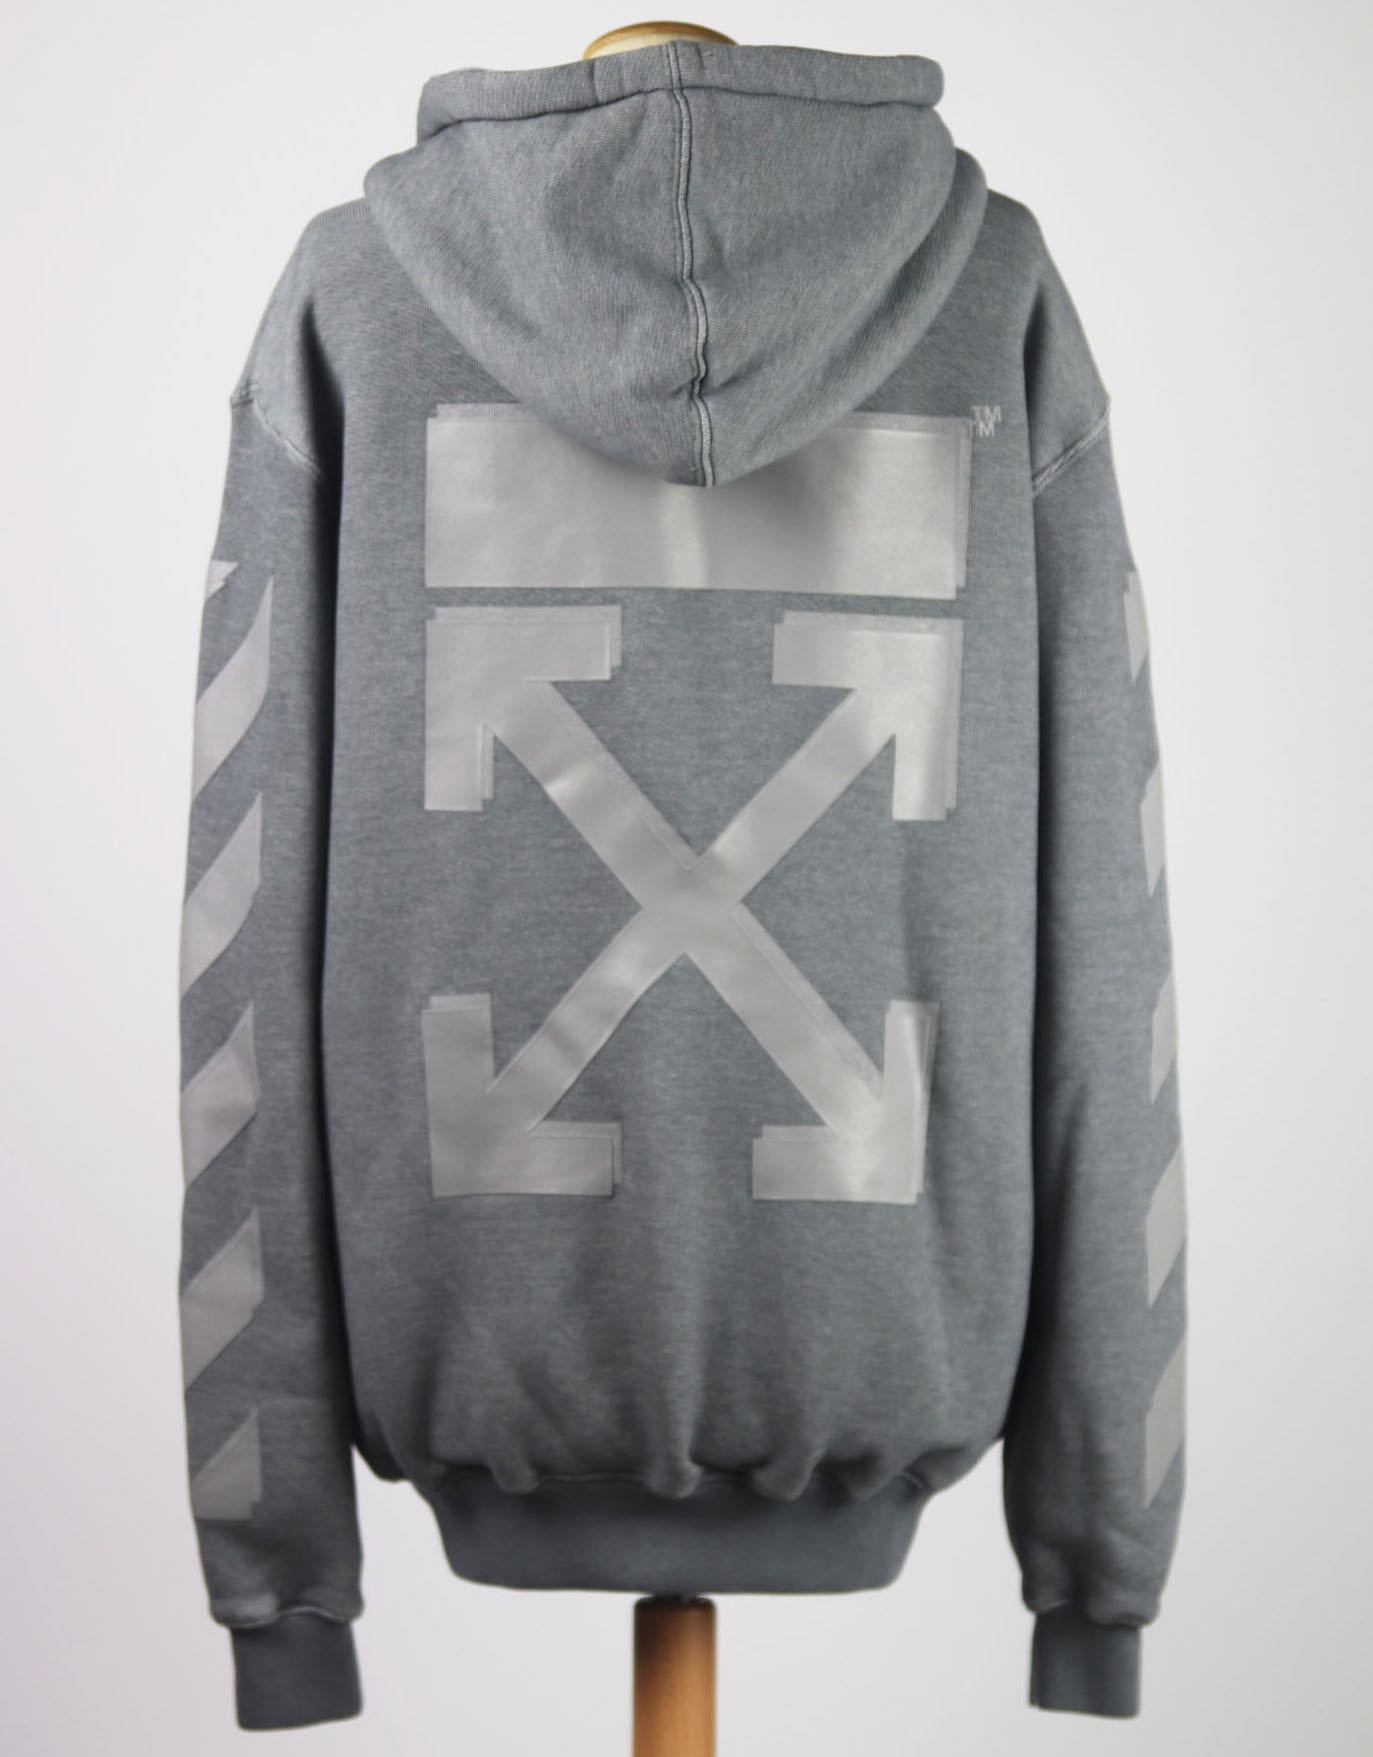 OFF-WHITE C/O VIRGIL ABLOH PRINTED COTTON JERSEY HOODIE SMALL